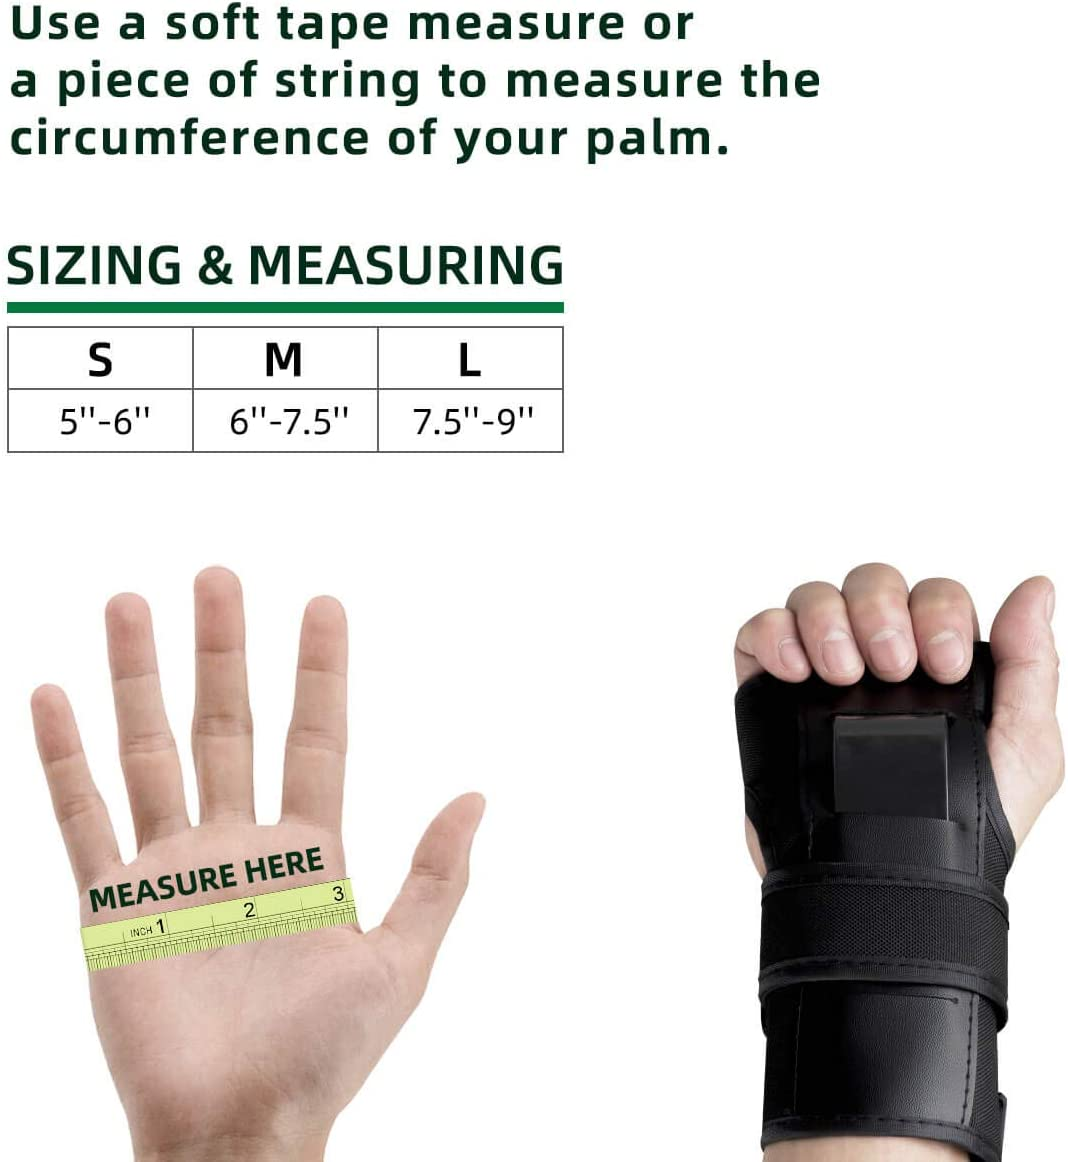 Longboarding Inline Skating Adjustable Wrist Palms Protective Gear for Skateboarding Roller Blading Snowboarding Wrist Guards with Palm Protection Pads for Adults and Kids